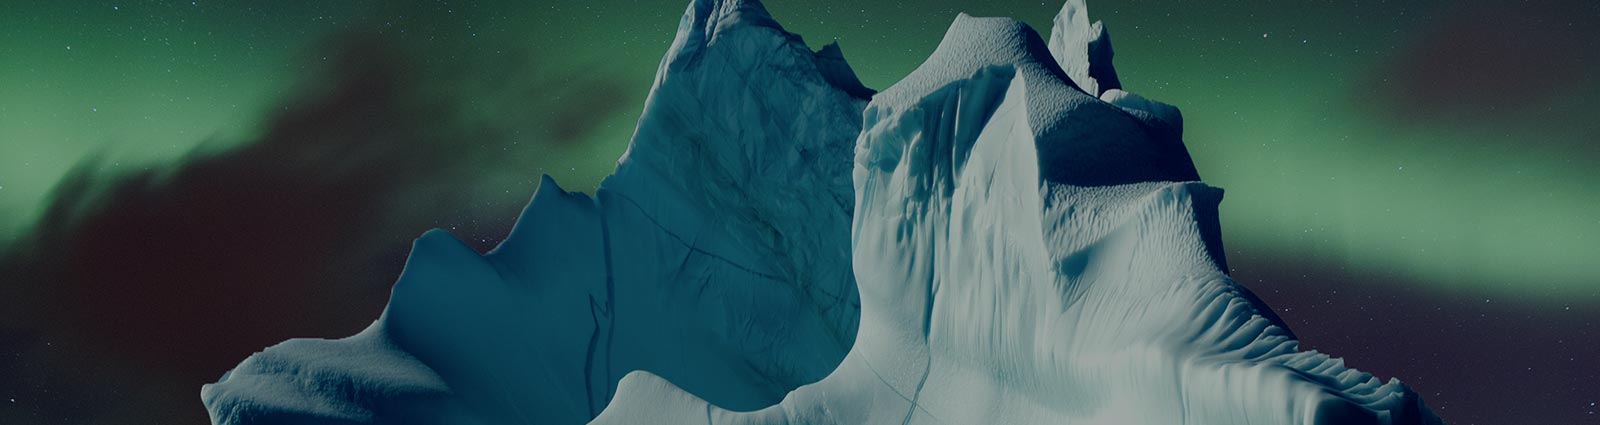 The northern lights over icebergs.